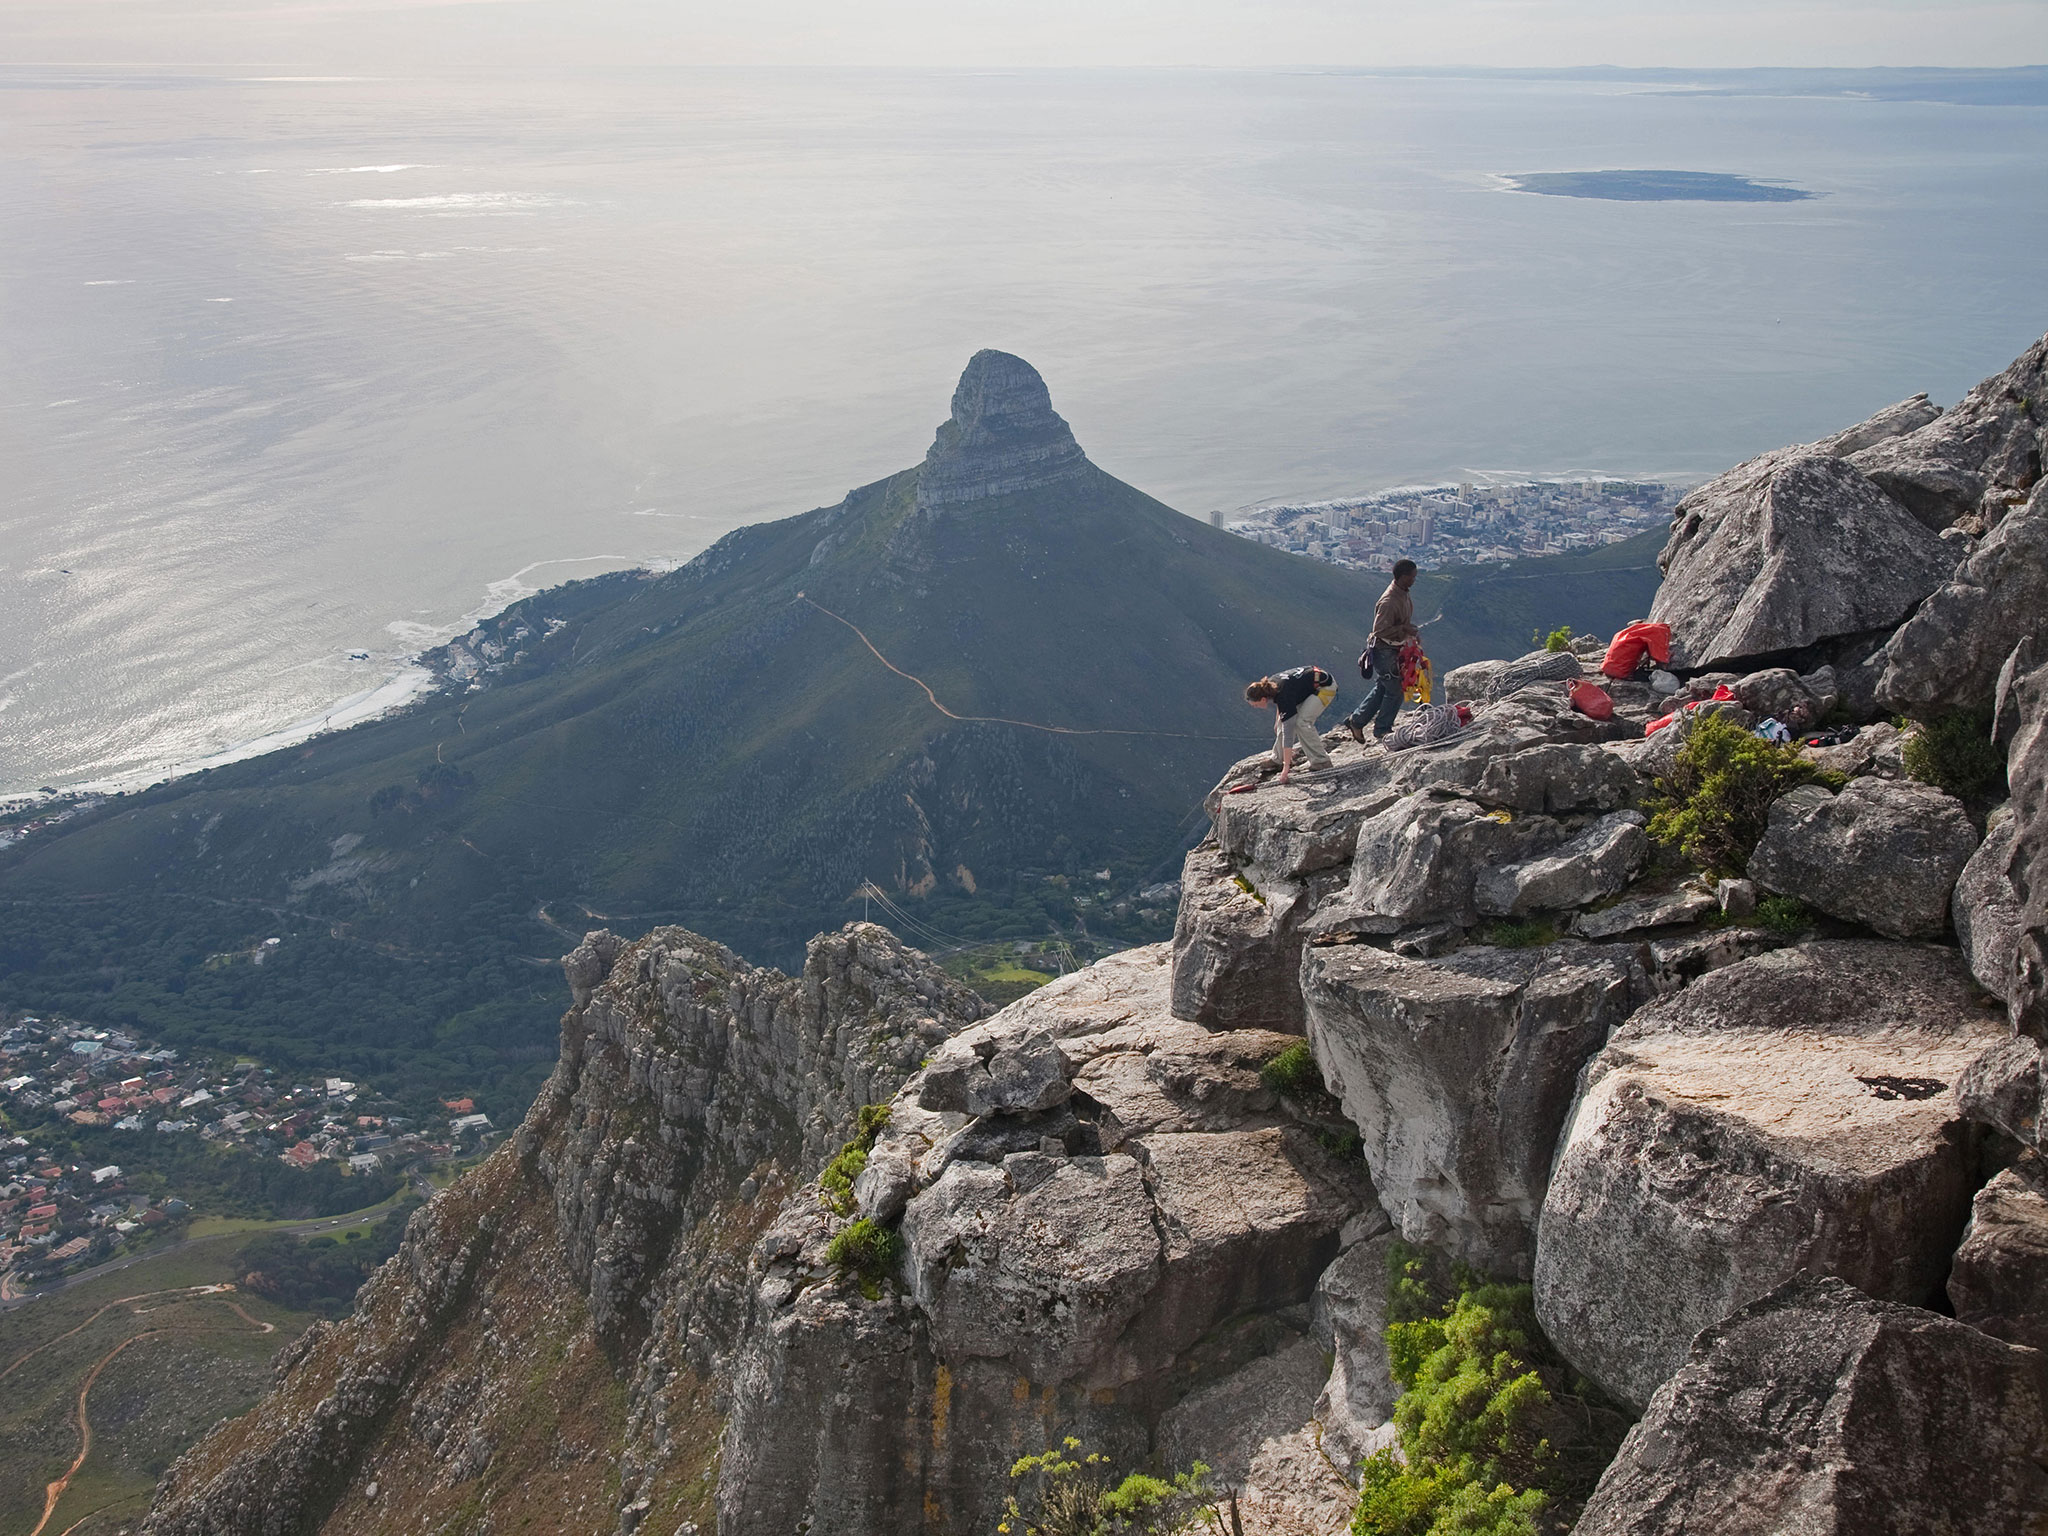 55a029ad7772ff921f95d319_table-mountain-cape-town-hikers.jpg